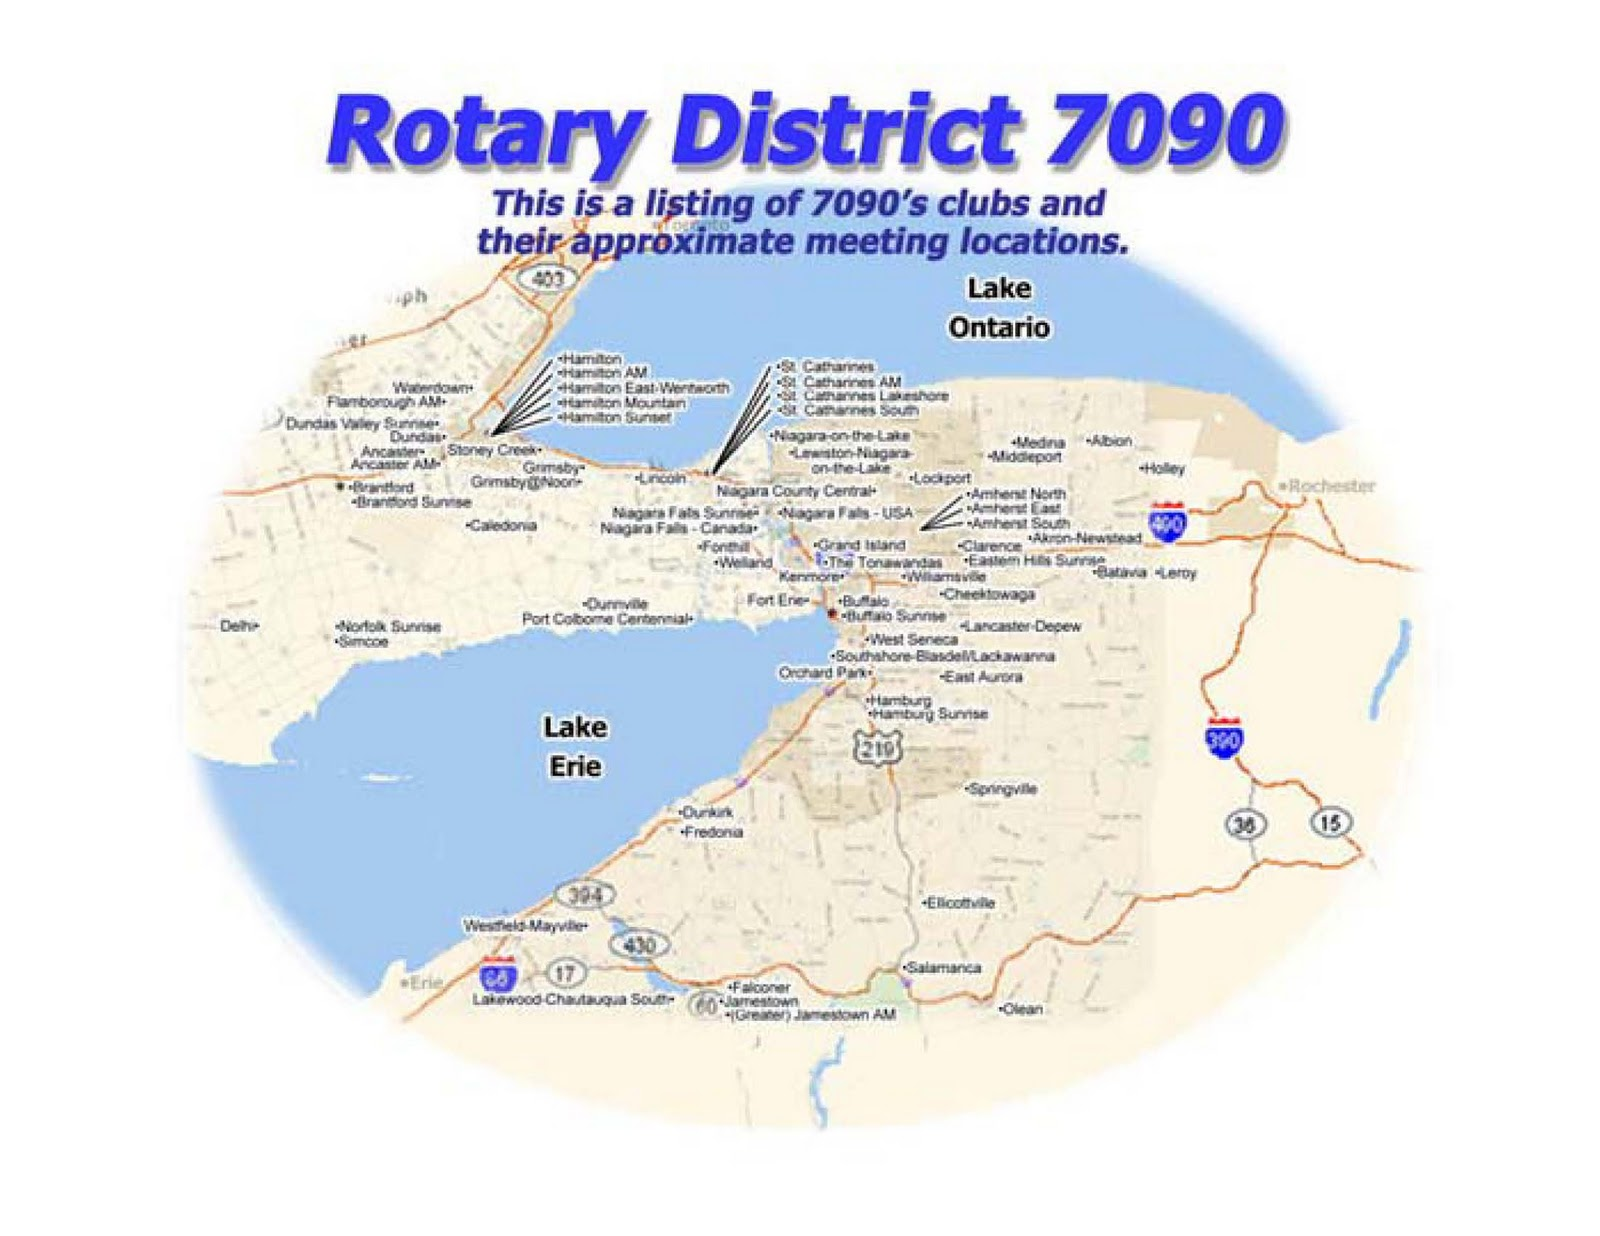 paul mcafee pr director rotary district 7090 president provisional rotary e club of sowny